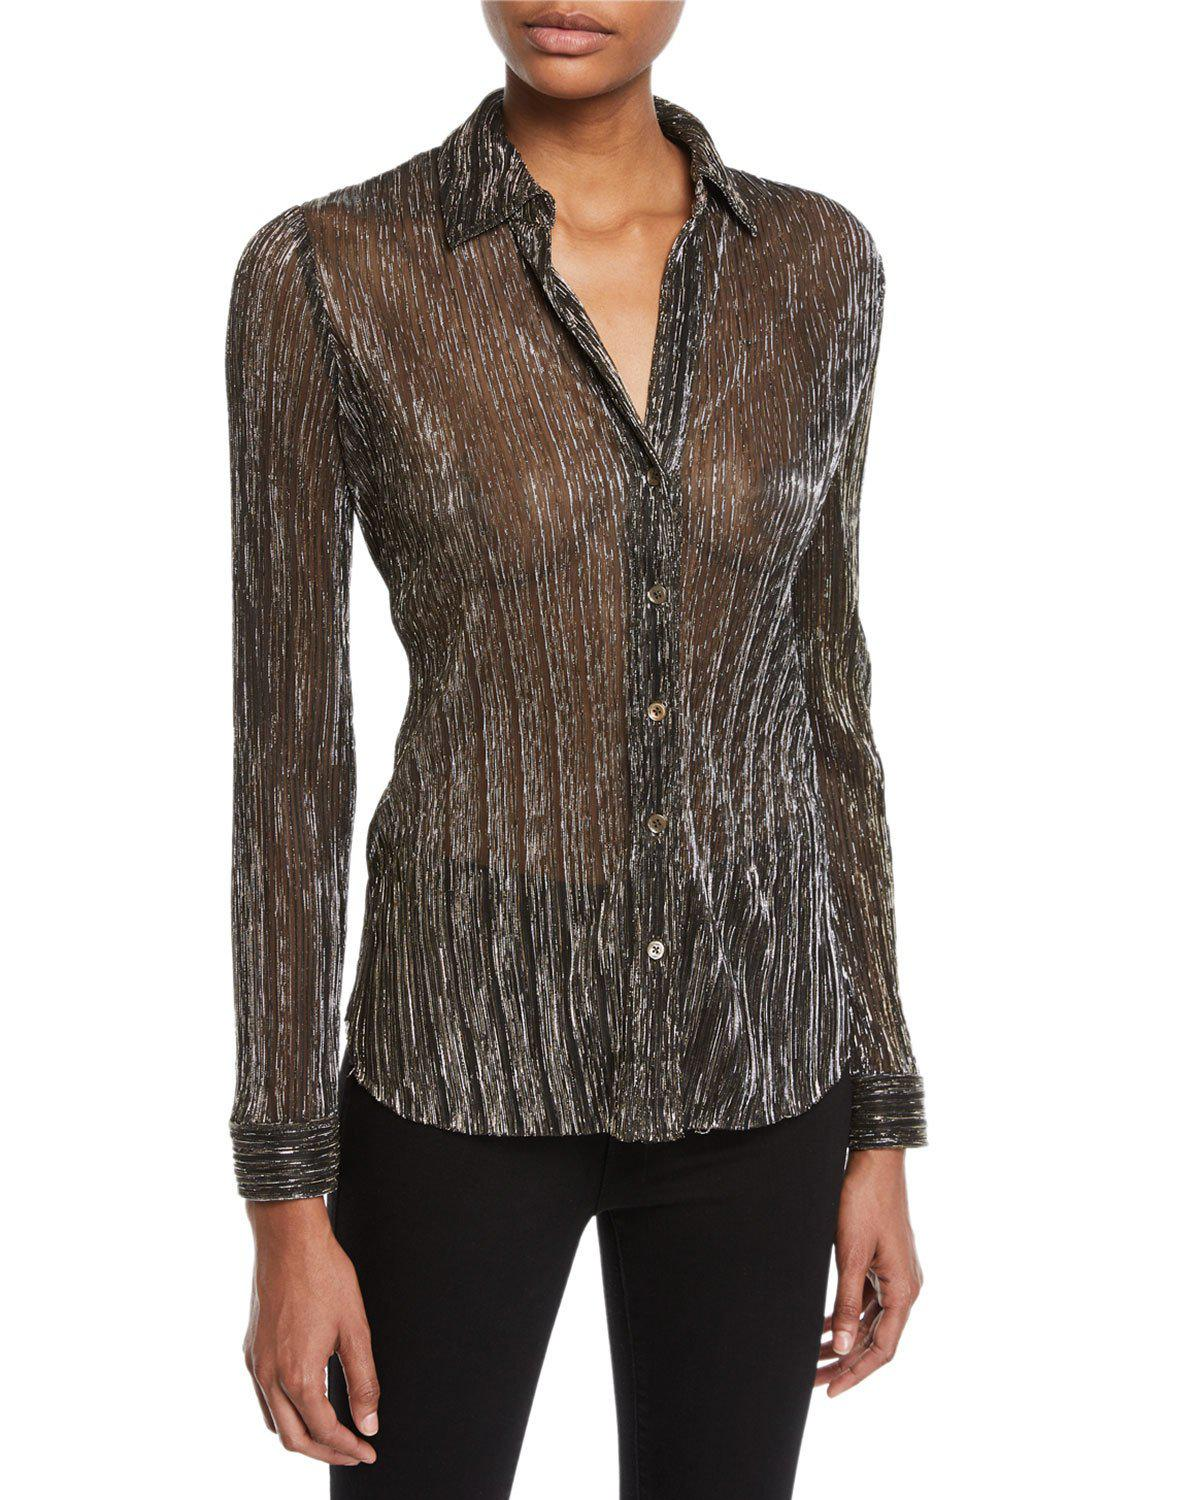 0ec20a1d04deb5 Lyst - L Agence Nina Long-sleeve Metallic Button-front Blouse in ...